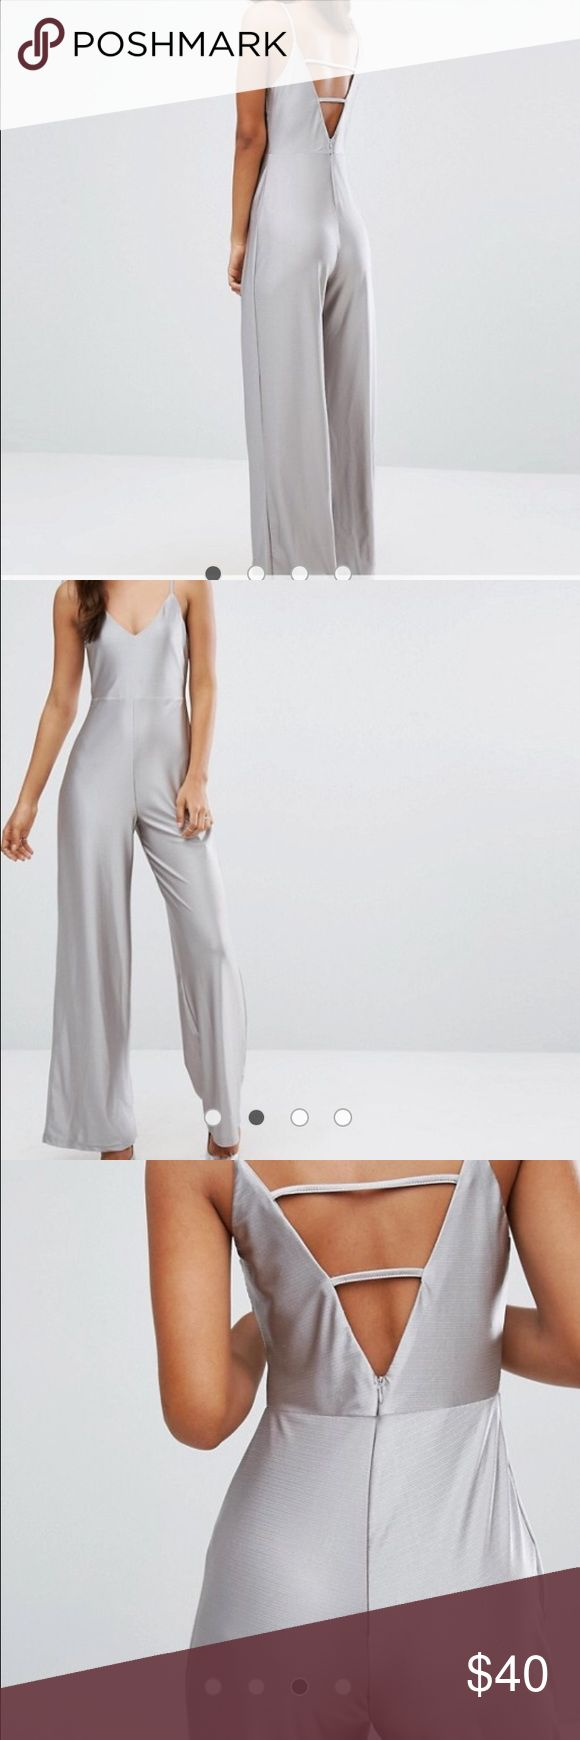 Asos silver jumpsuit My picture doesn't do it justice I put it there so that you can see I actually have it, never worn looks exactly like the picture ASOS Other